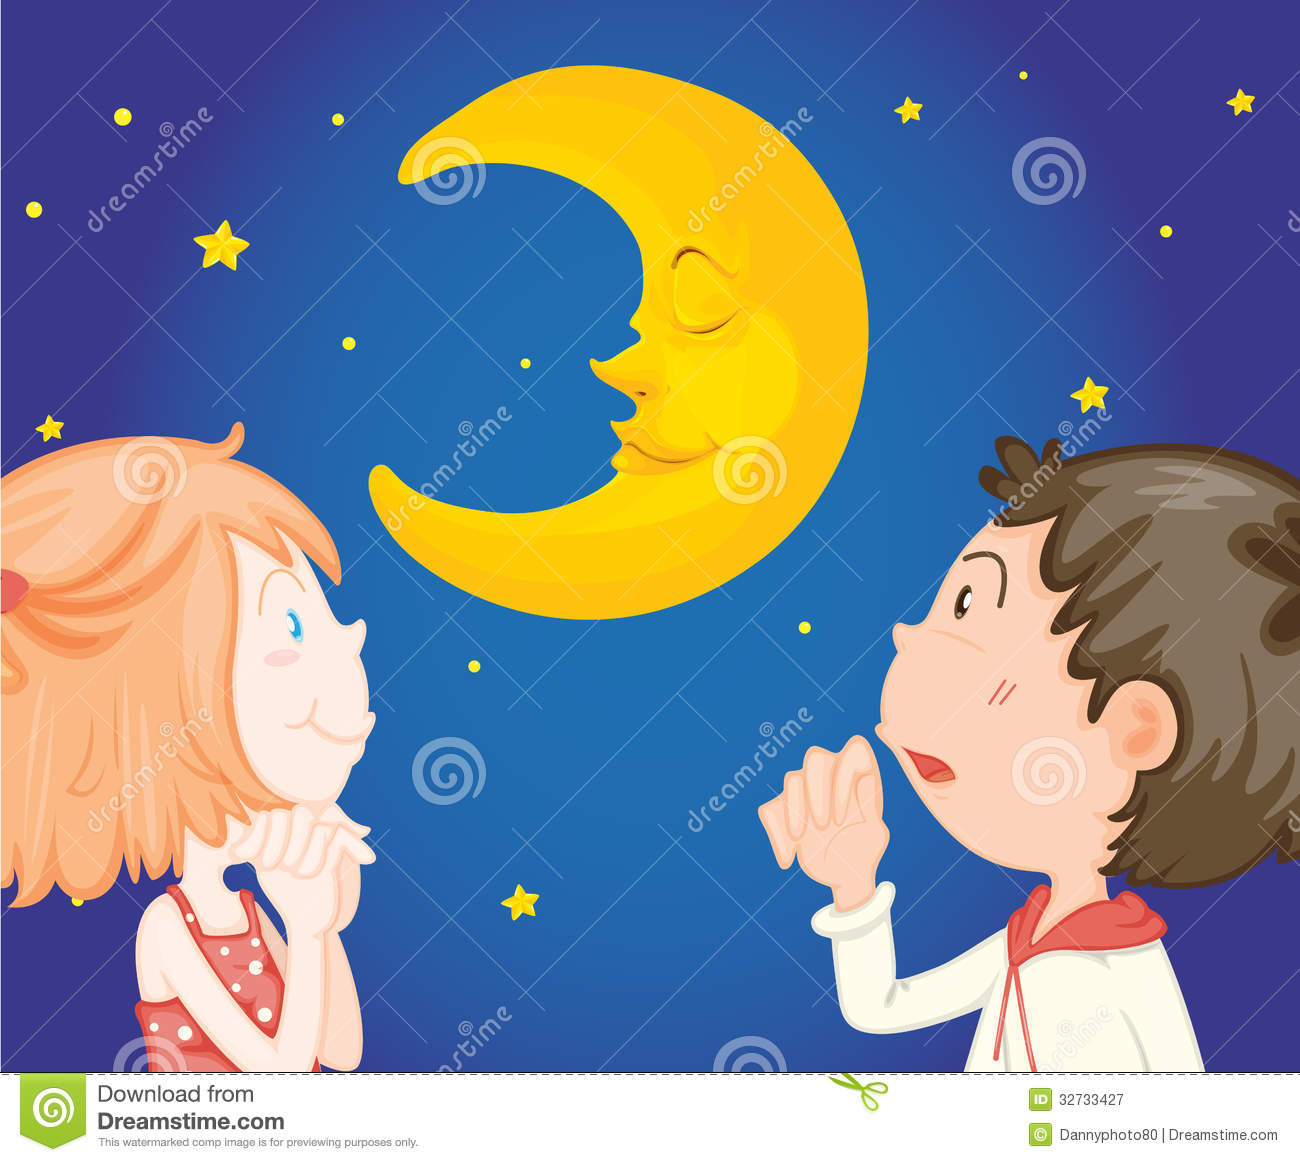 Kids at night with moon royalty free stock photography image - Royalty Free Stock Photo Couple Moon Night